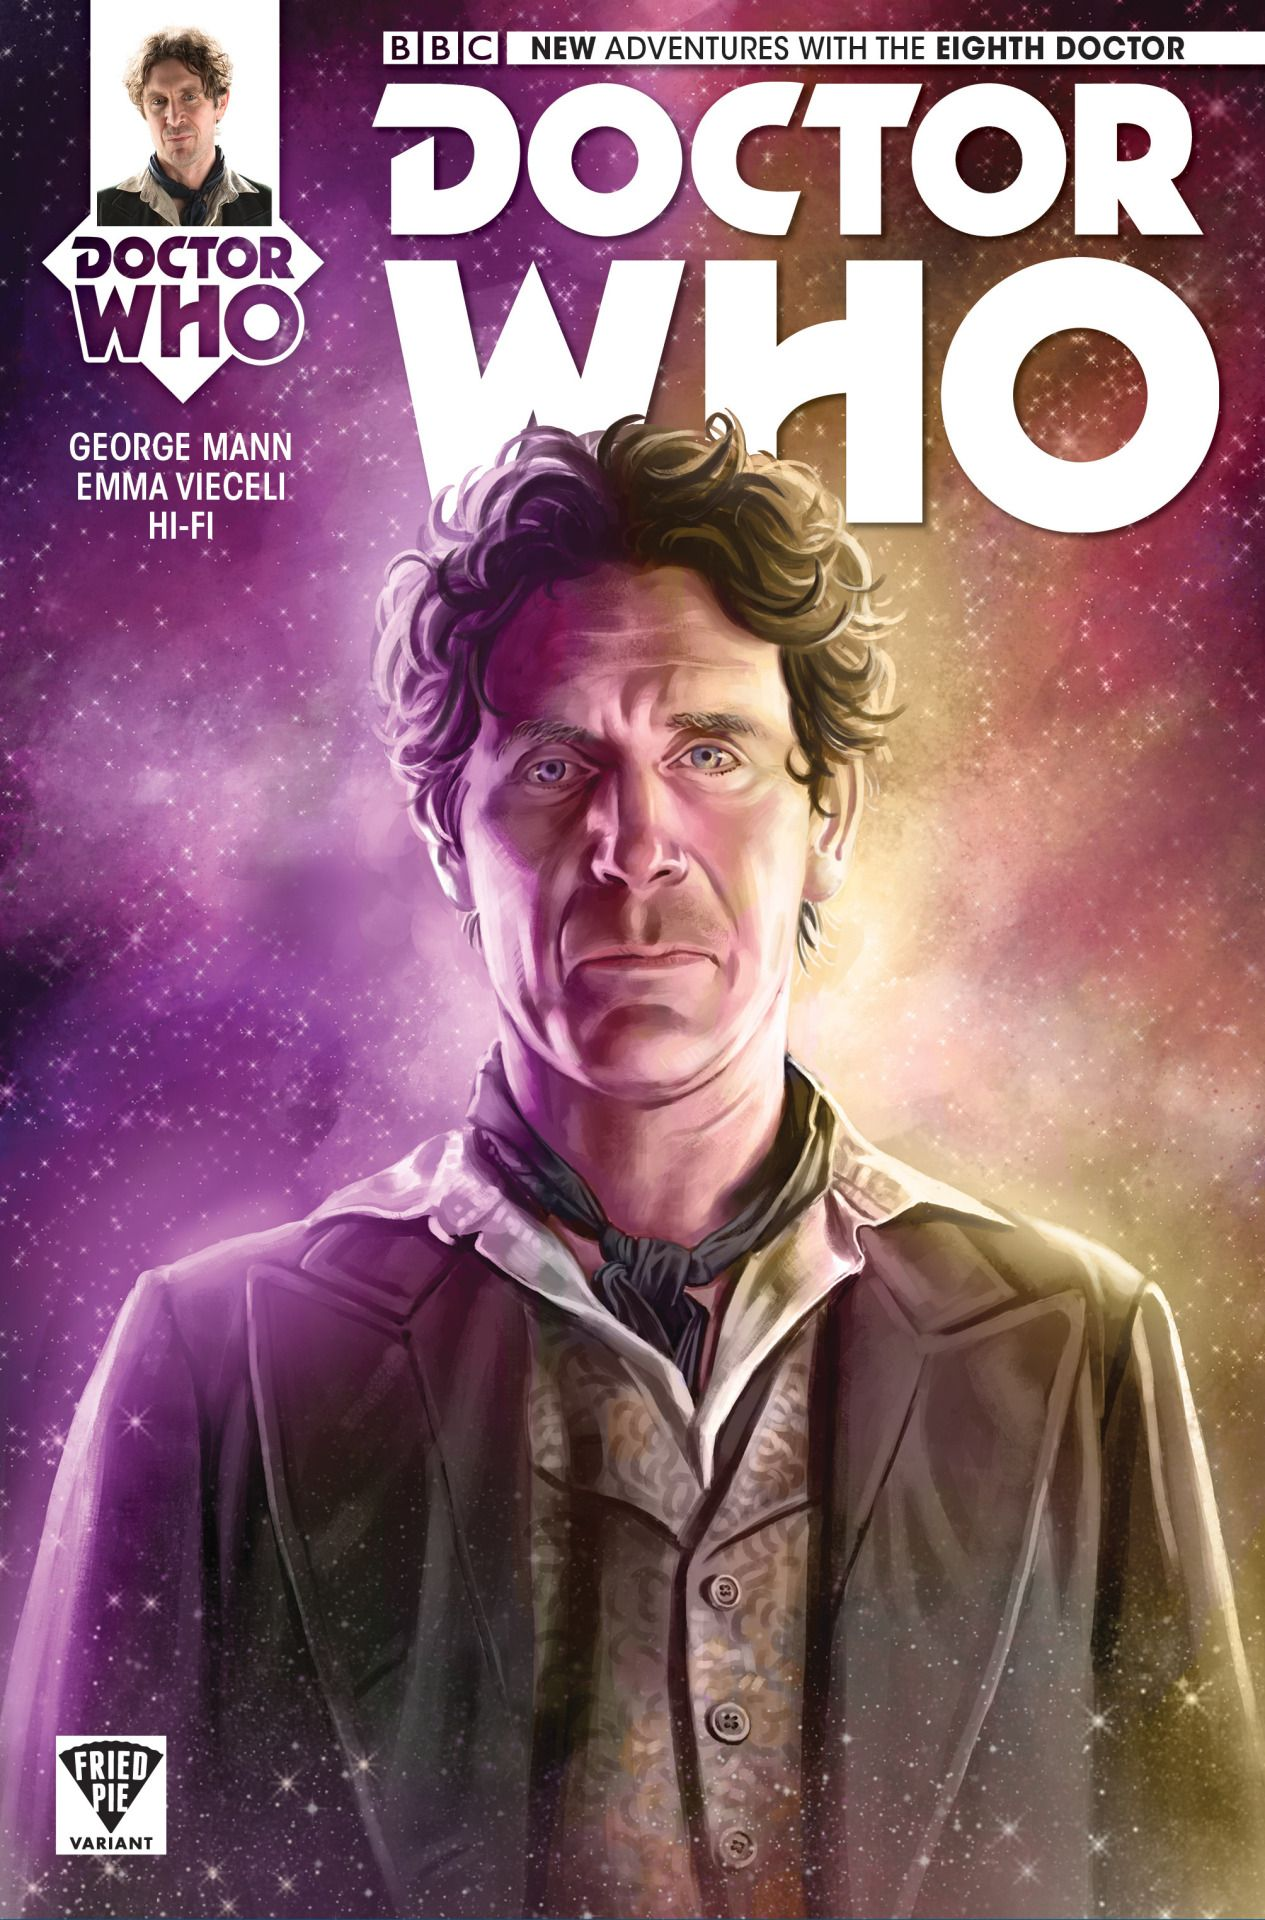 Doctor Who 8th 1 Publisher Titan Comics Release Date 11